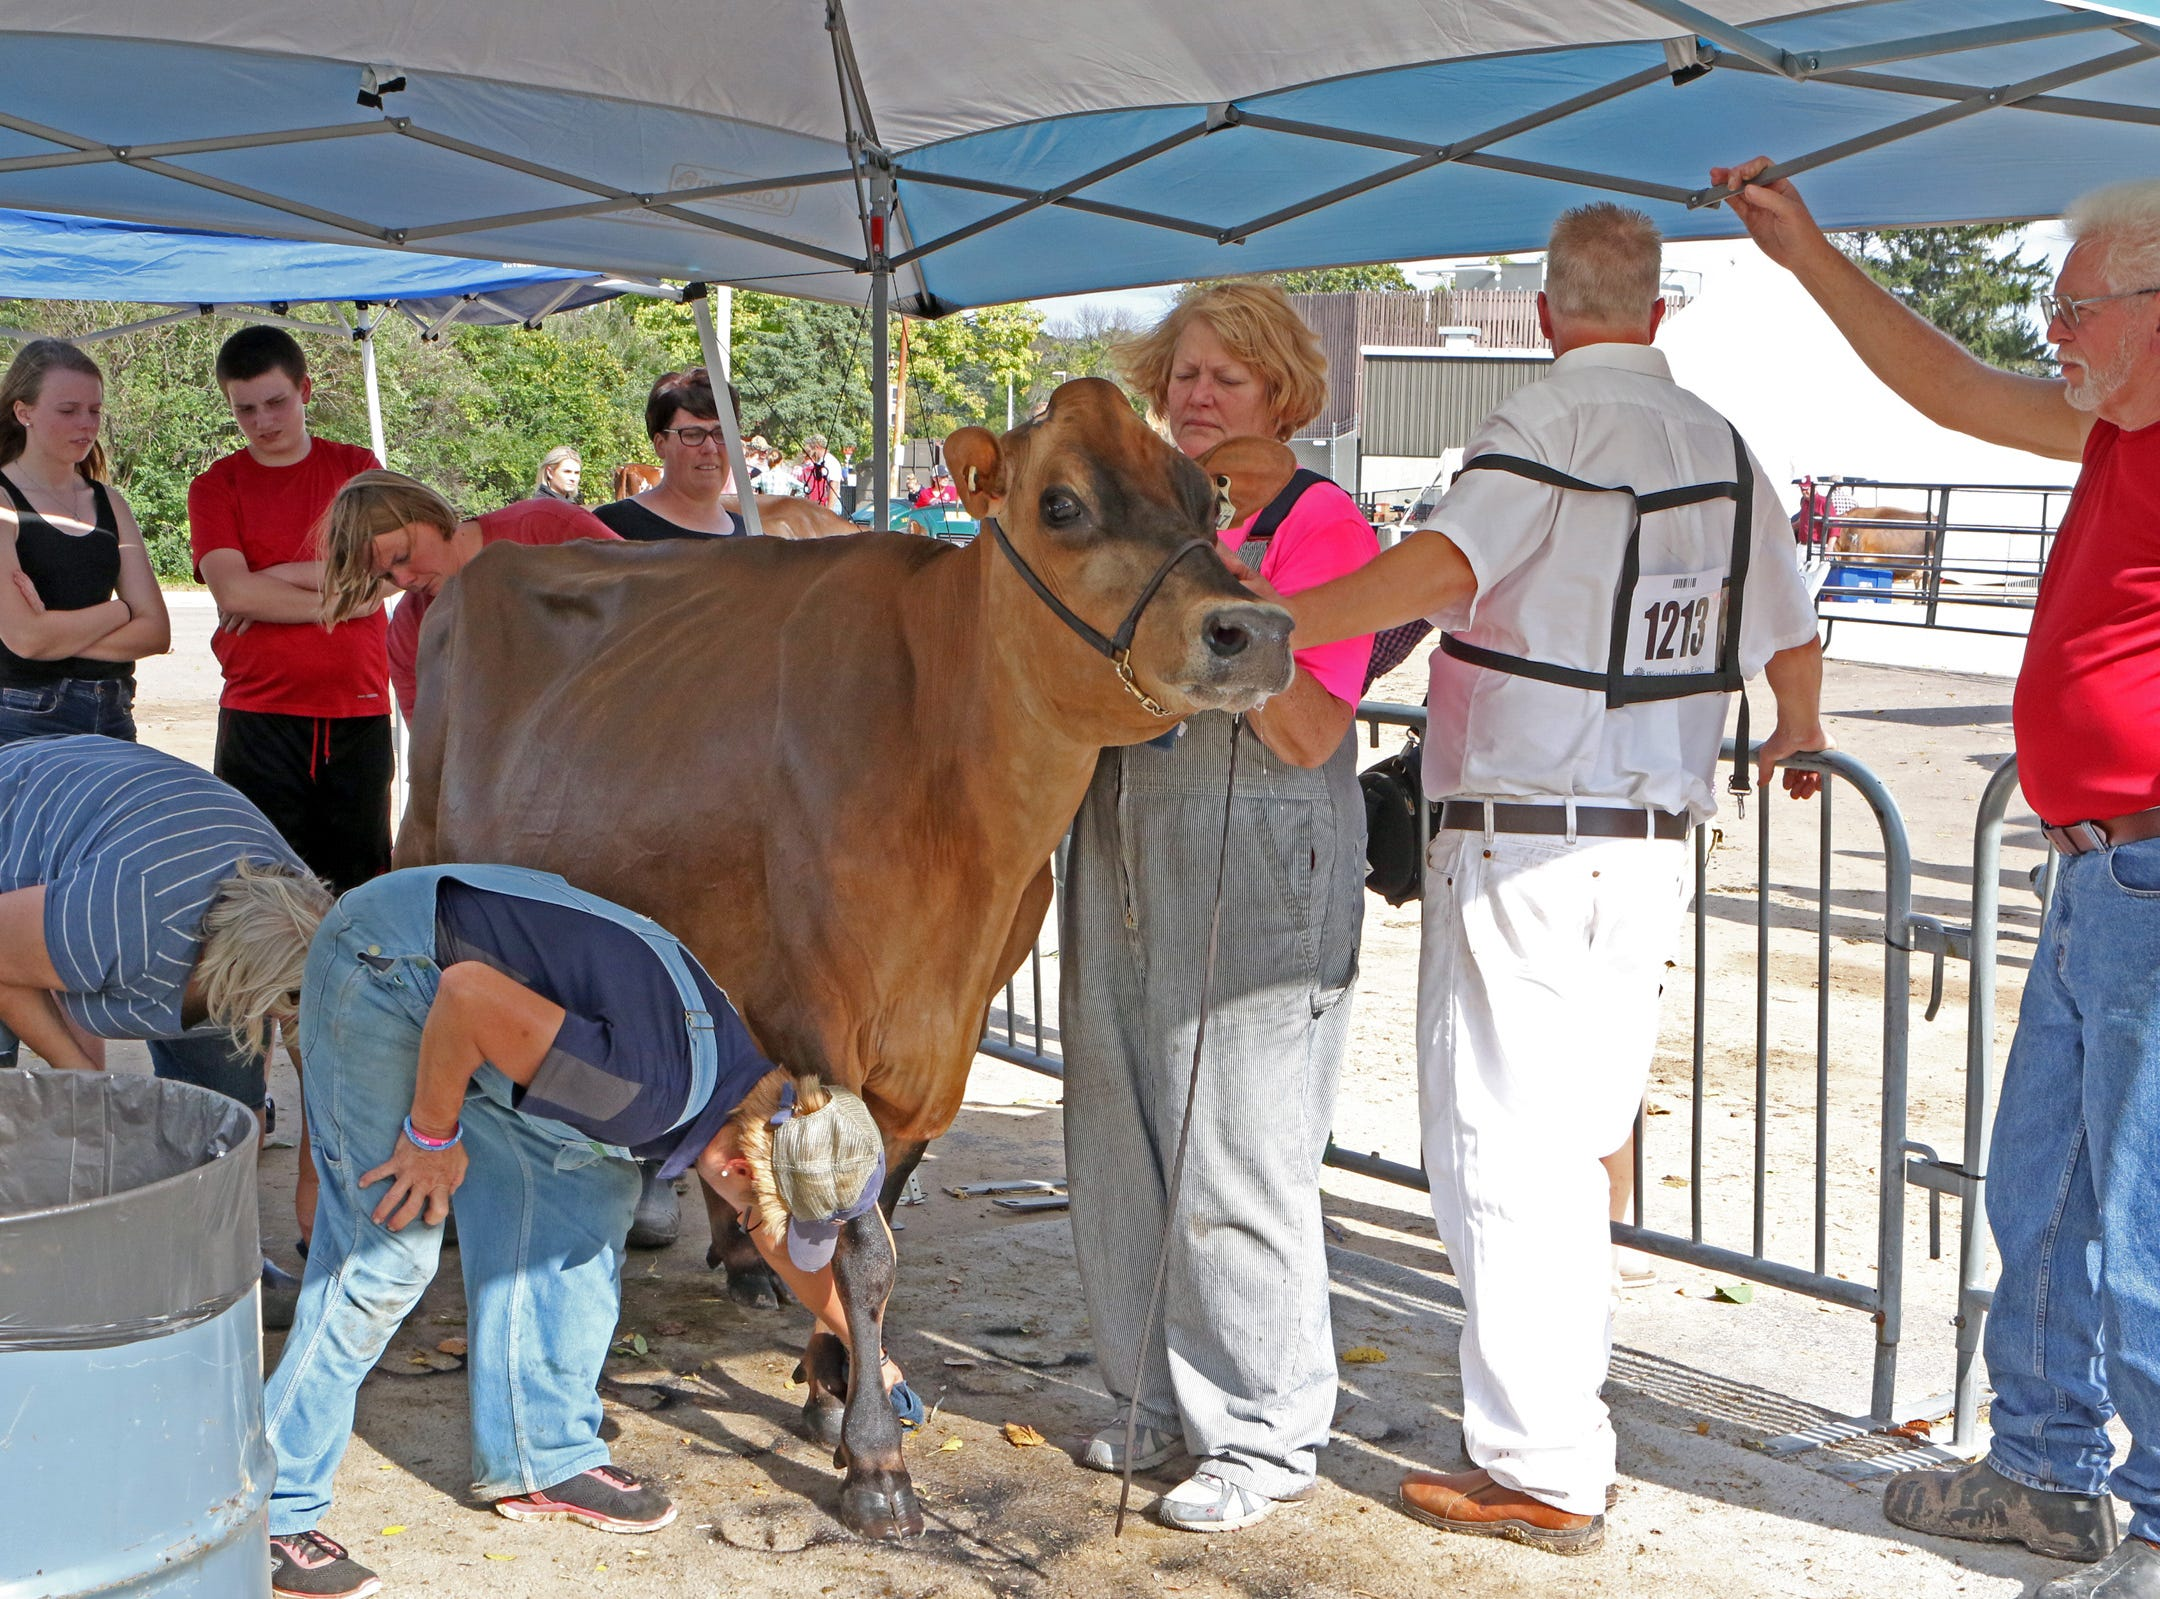 Cows are readied for photos after shows at the World Dairy Expo on Oct. 3 in Madison.